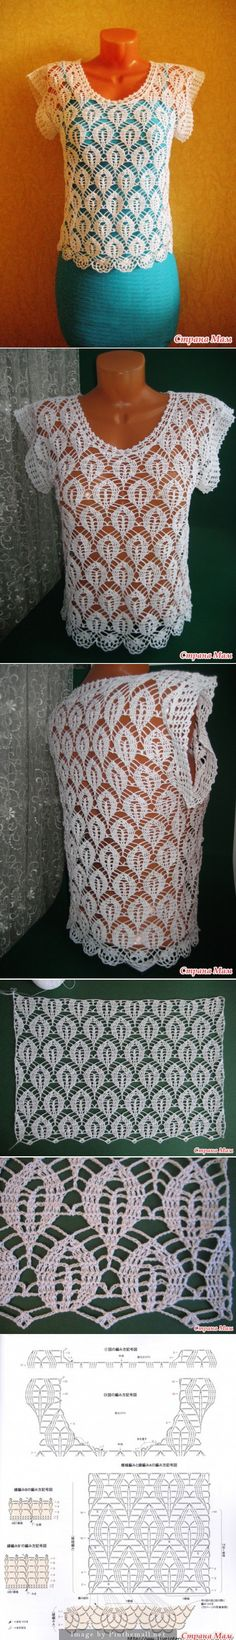 Crochet pullover/top. http://www.stranamam.ru/post/7288777/ - created via http://pinthemall.net